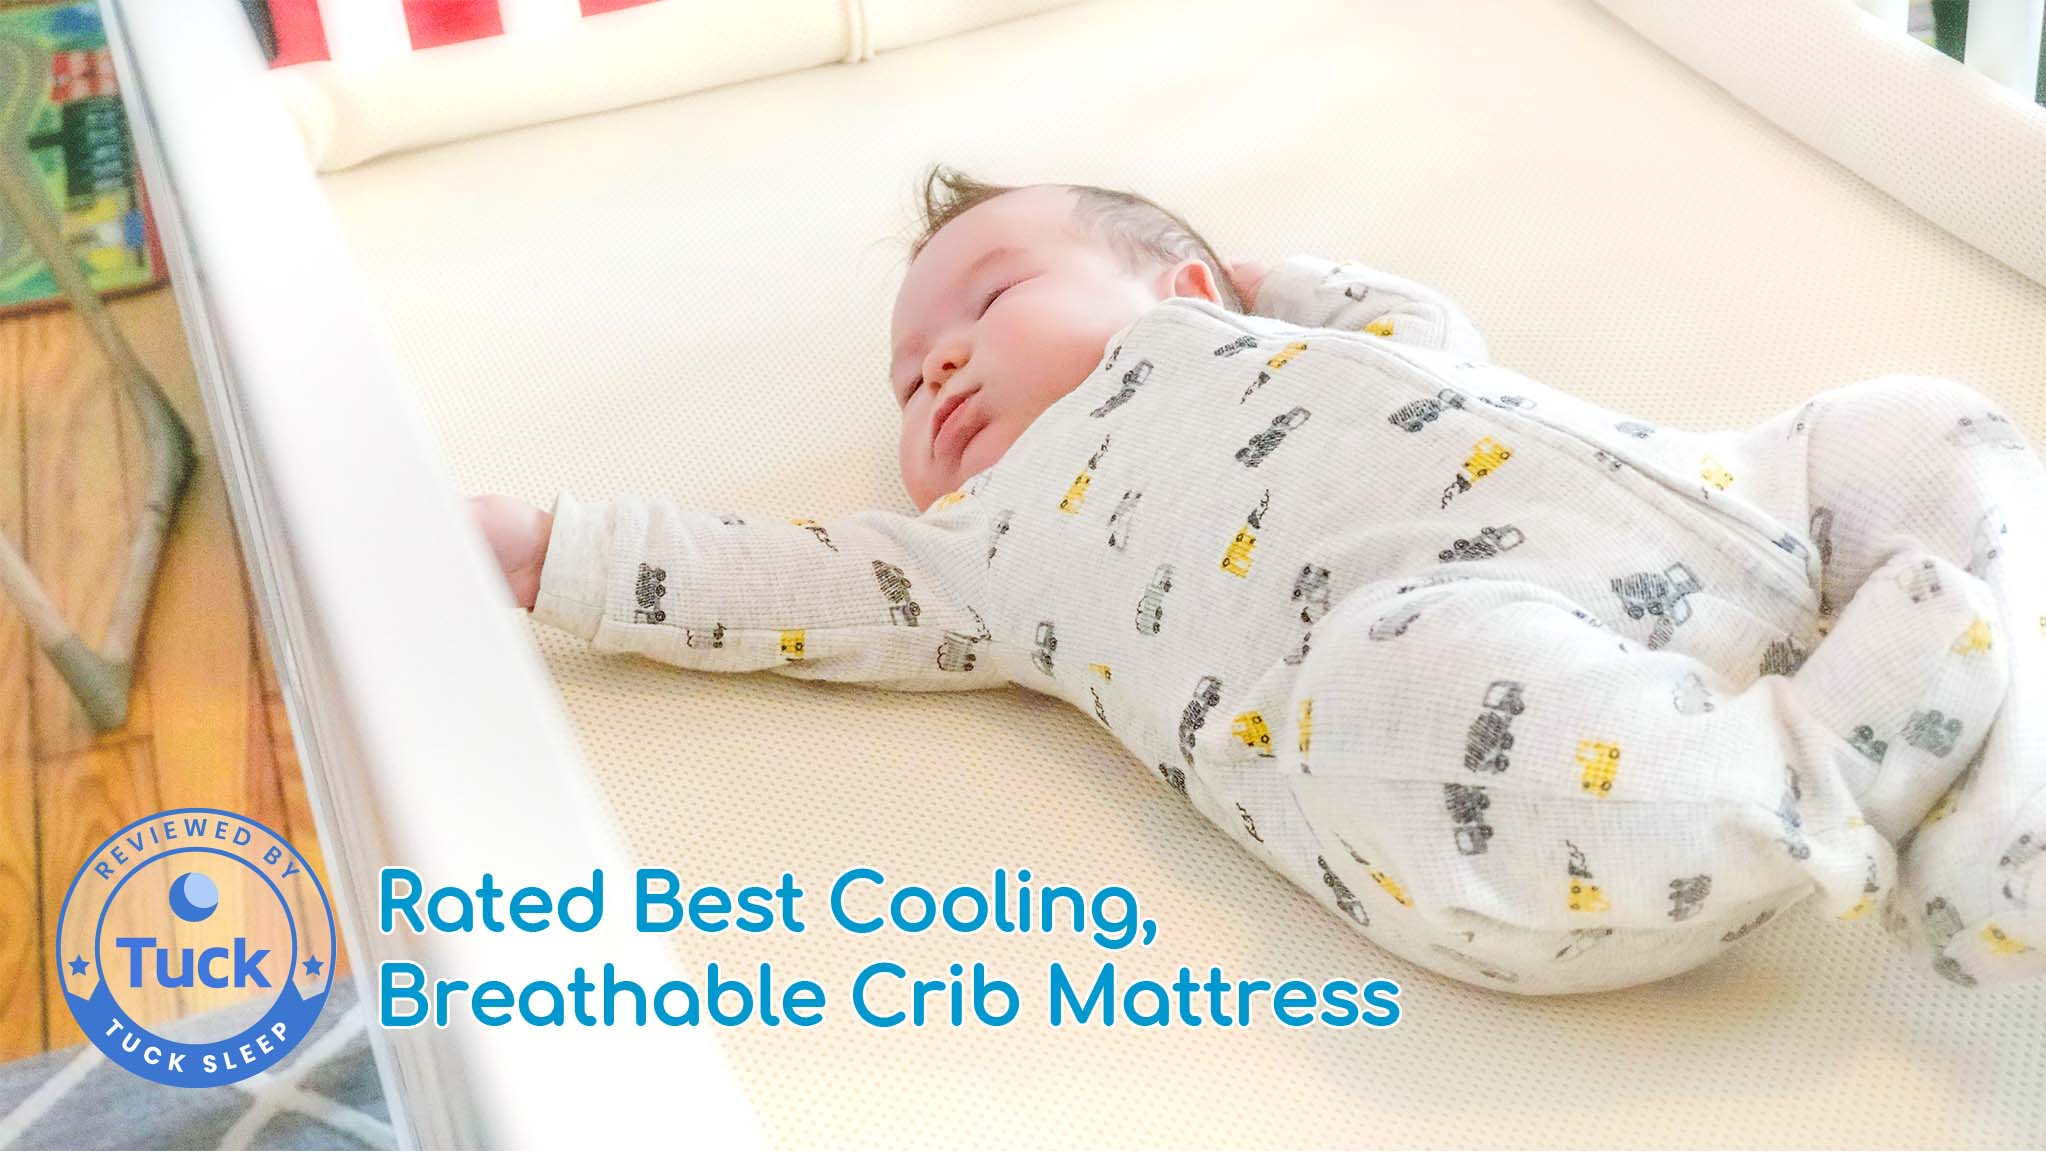 Rated Best Cooling, Breathable Crib Mattress